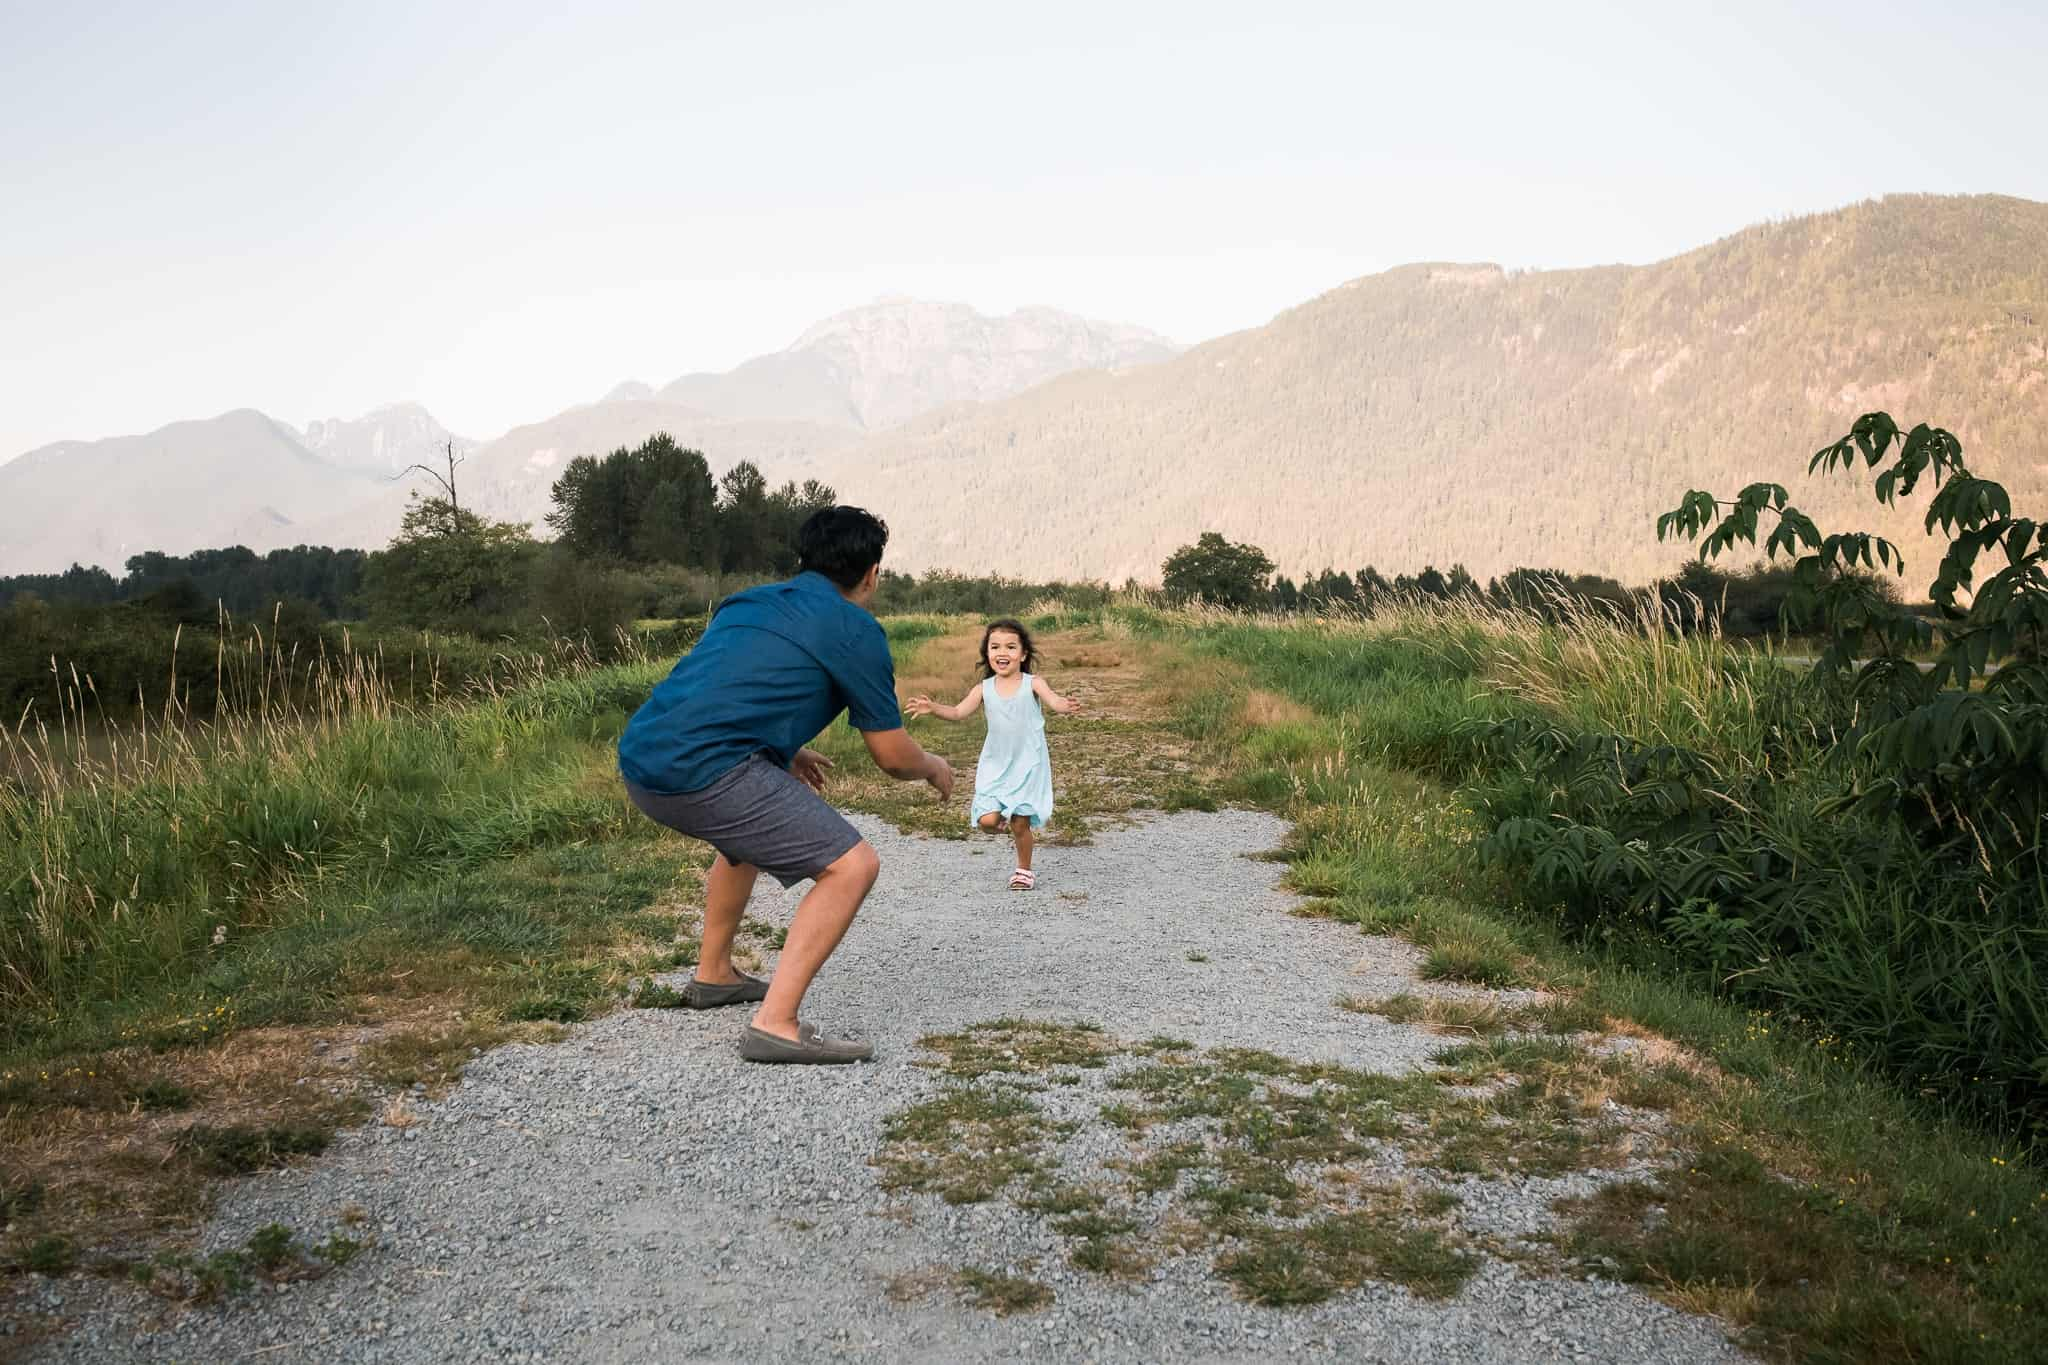 little girl running into her daddy's arms with mountains in the background